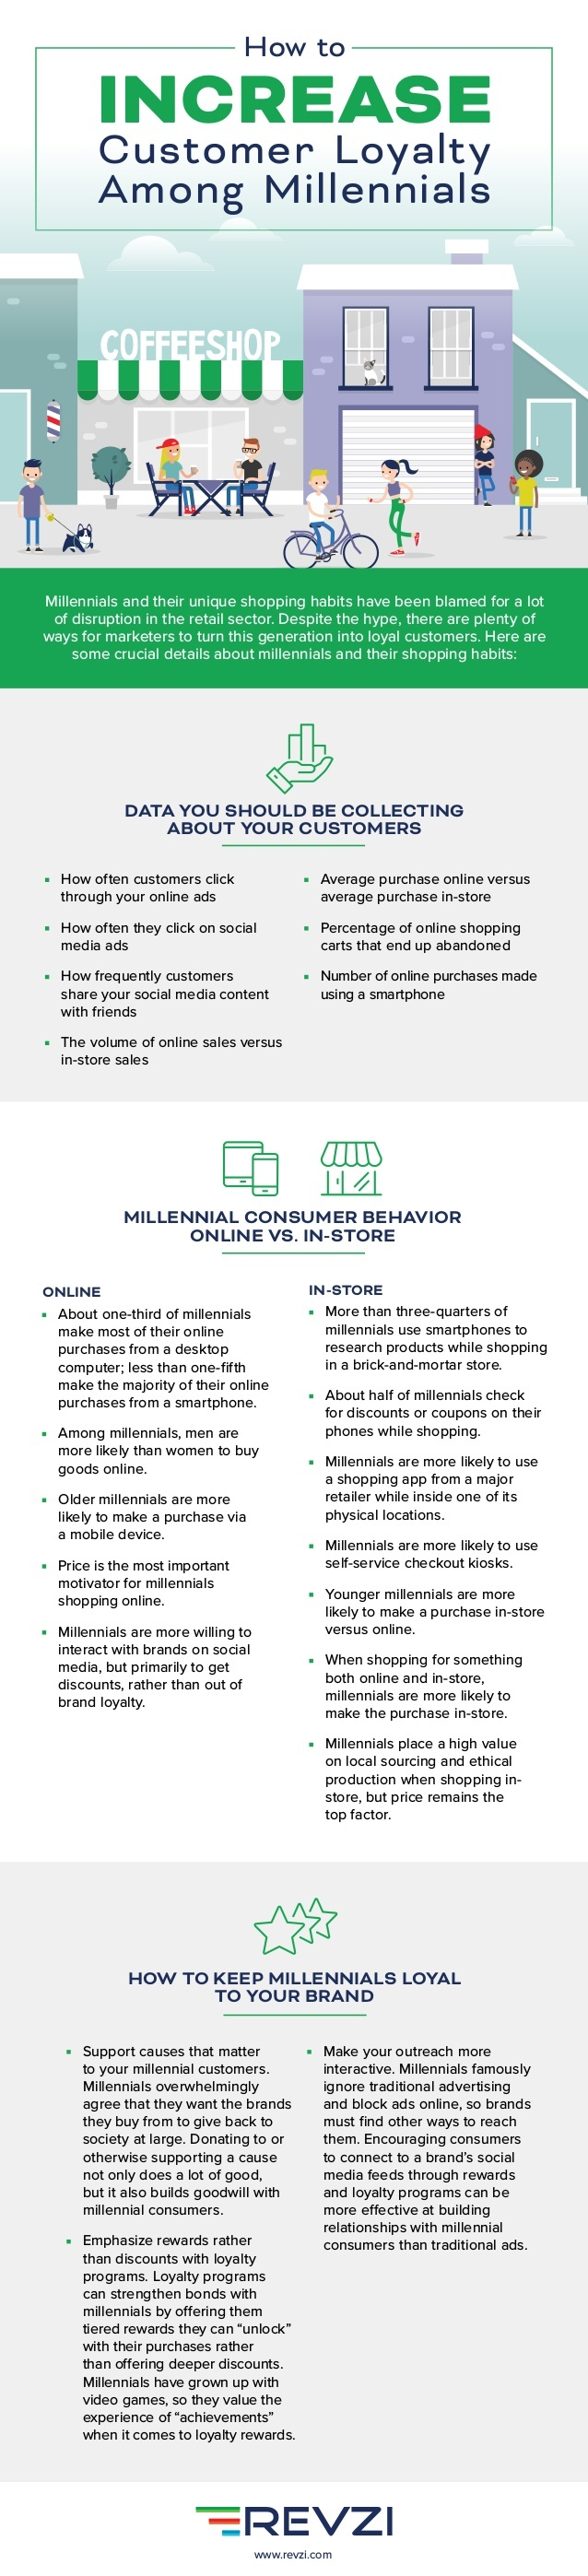 how to increase customer loyalty among millennial consumers